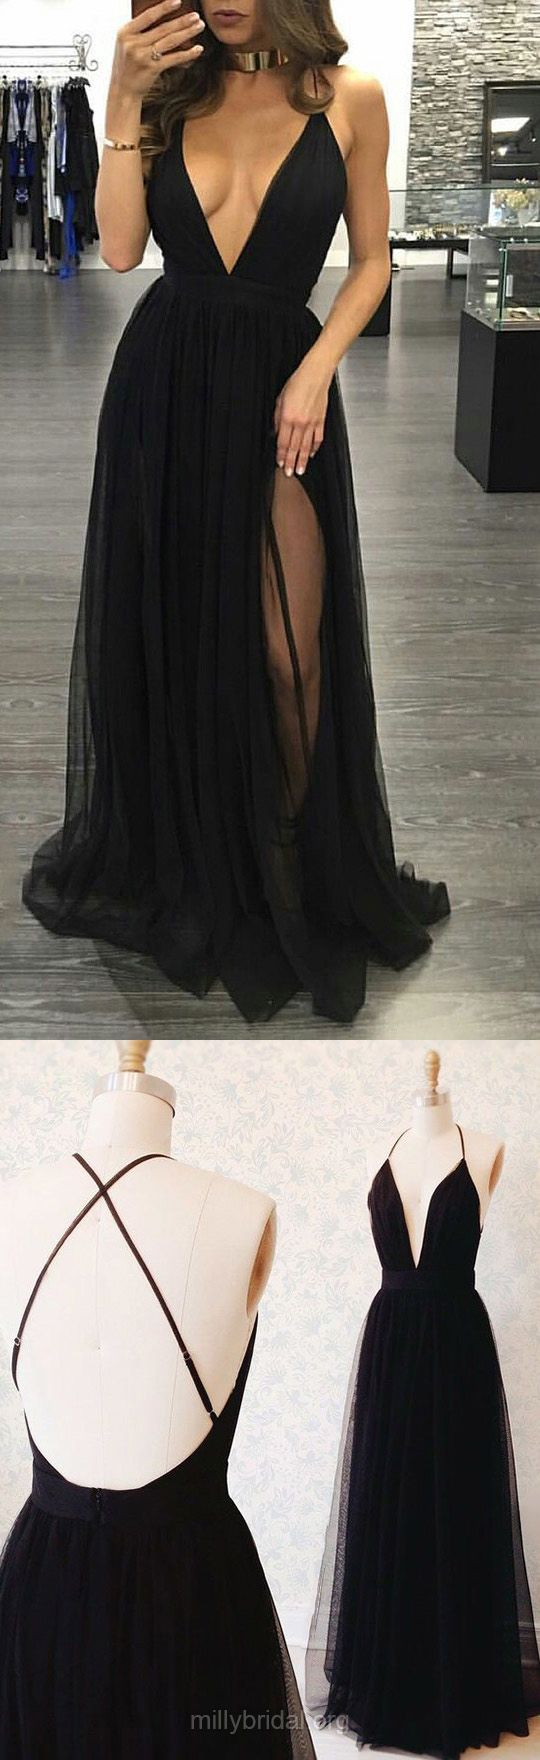 Hot Backless Black Prom Dresses,A-line V-neck Formal Evening Gowns,Tulle Women Long Party Dresses, Split Front Sexy Homecoming Dresses